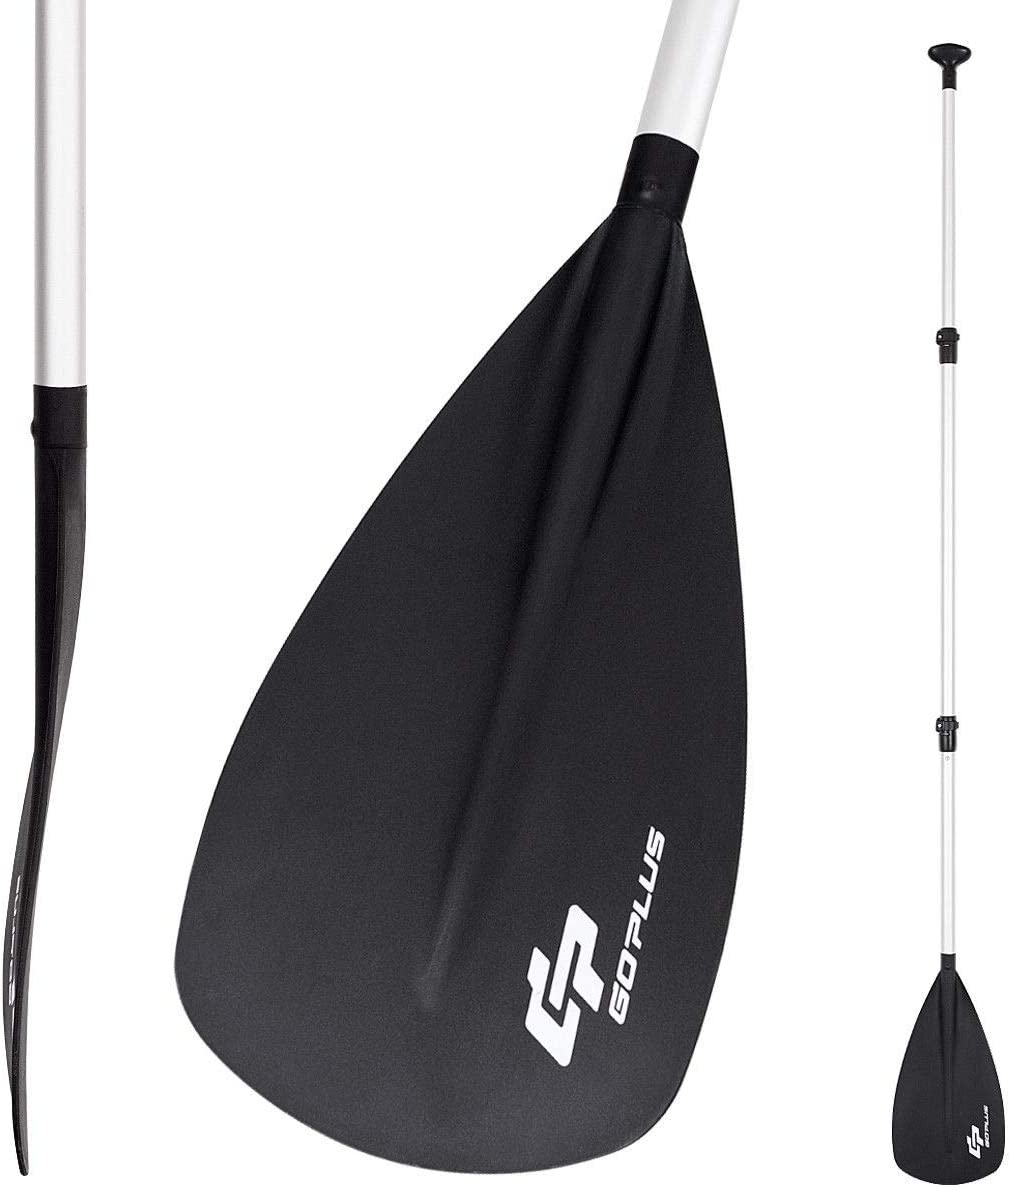 Sales of SALE items Super special price from new works Goplus Adjustable Paddle Board Aluminum S 3-Piece Alloy